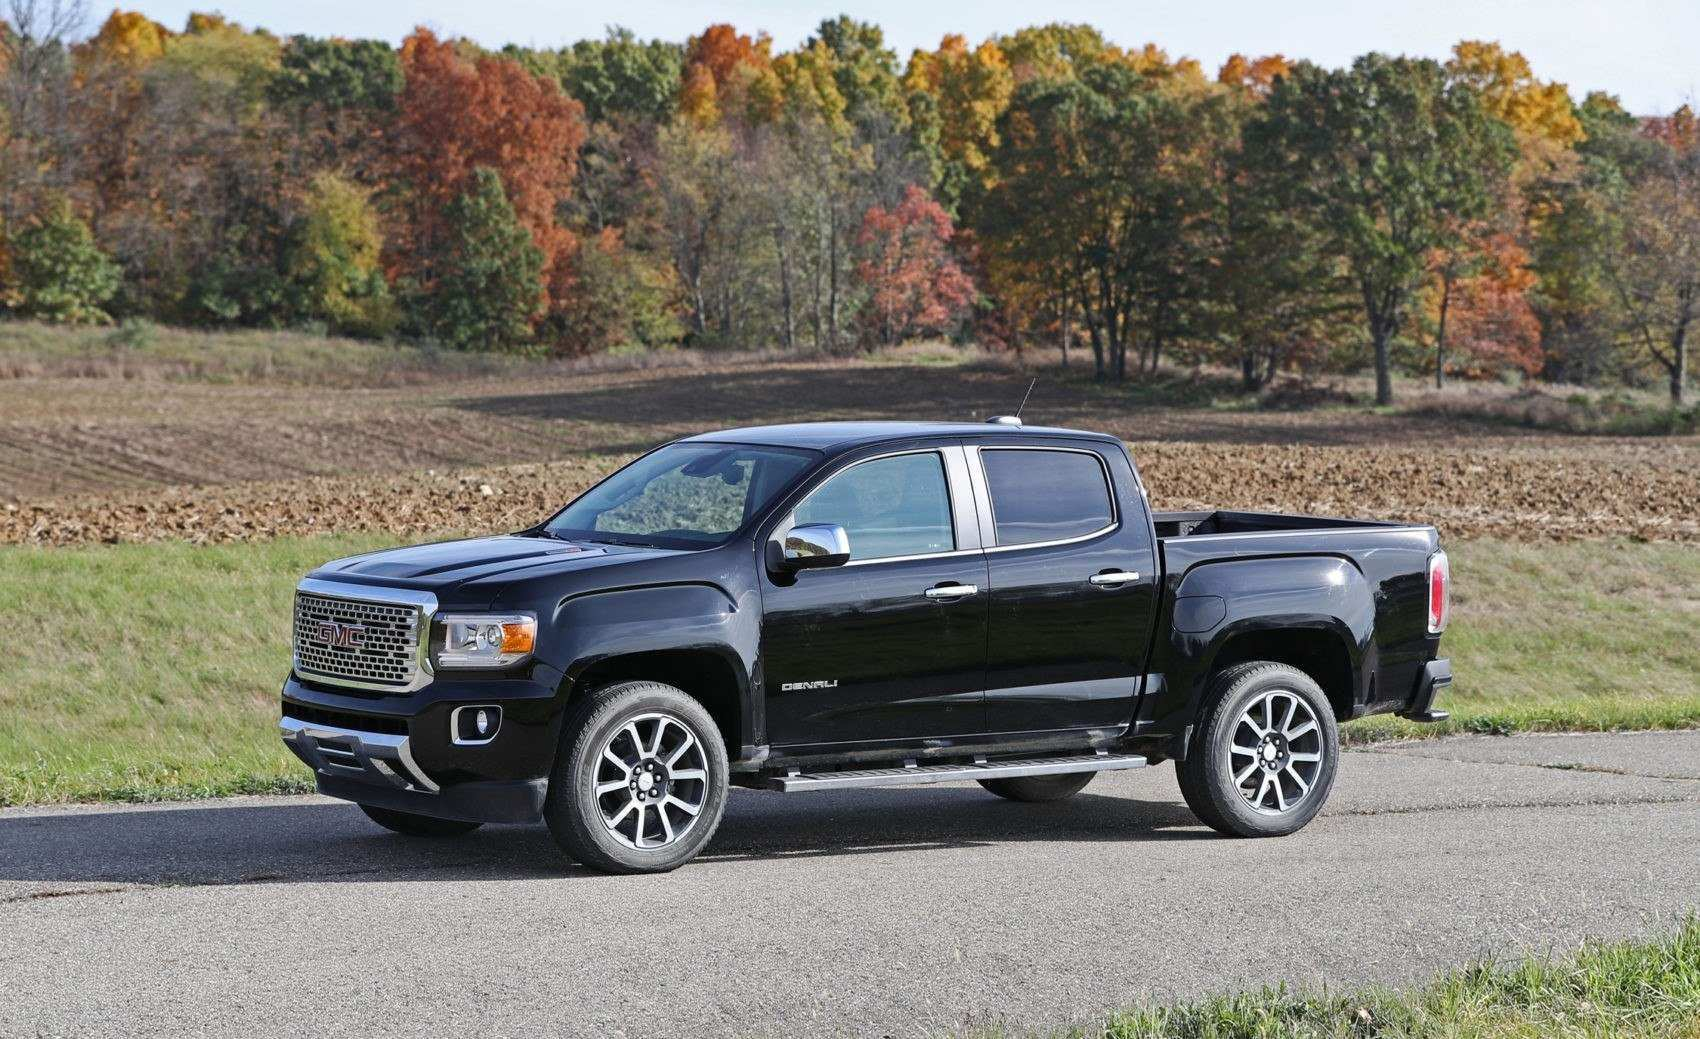 65 Great Best Gmc 2019 Canyon Release Date Exterior Review with Best Gmc 2019 Canyon Release Date Exterior